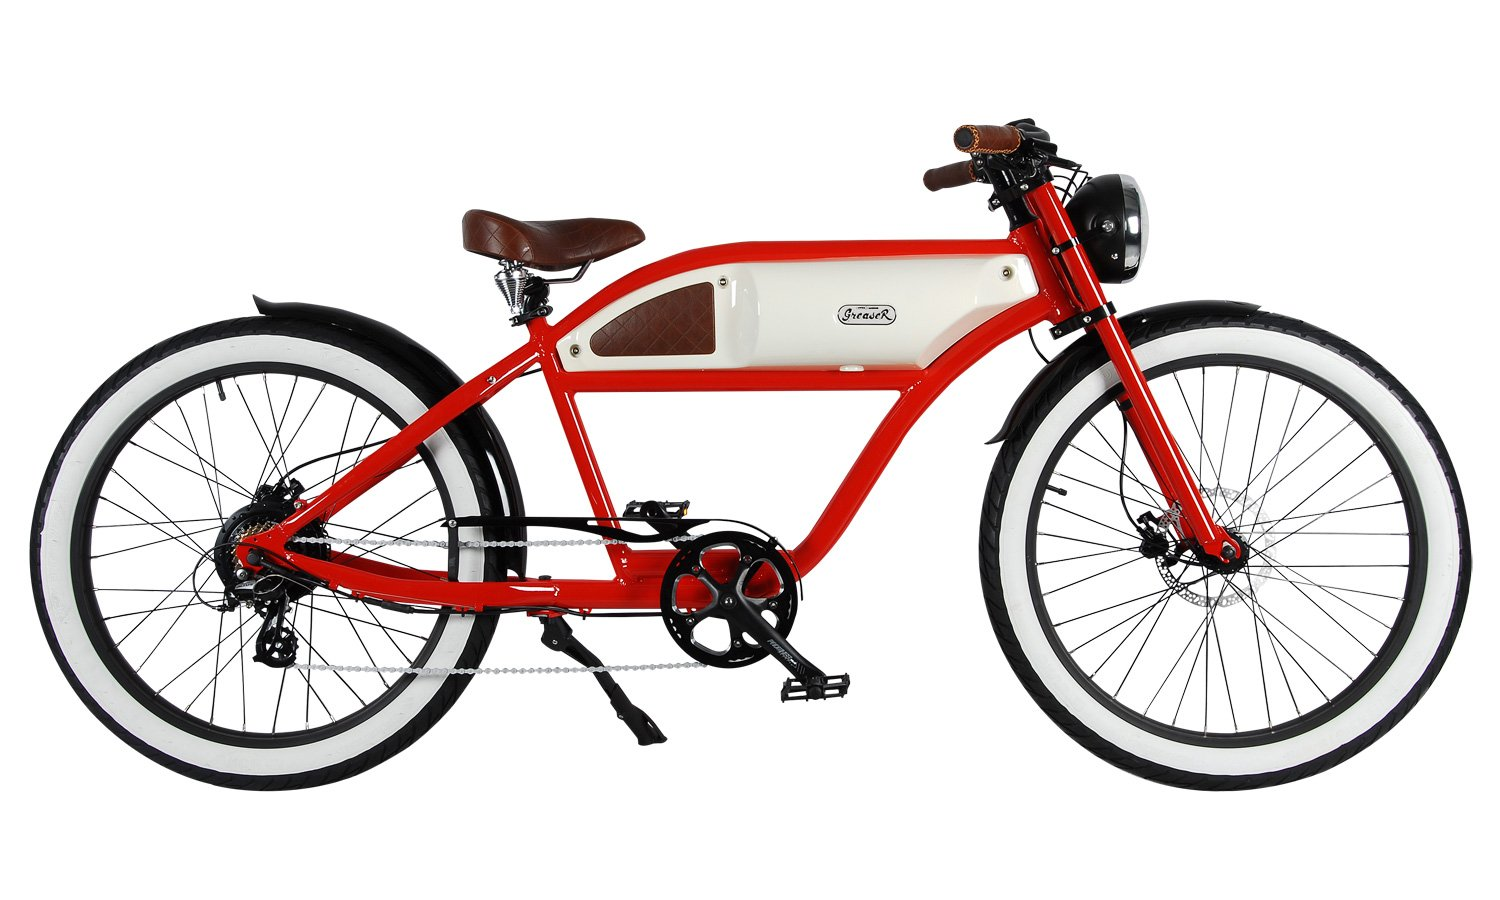 Michael Blast Greaser 500w Electric Bike Cafe Racer - red and white